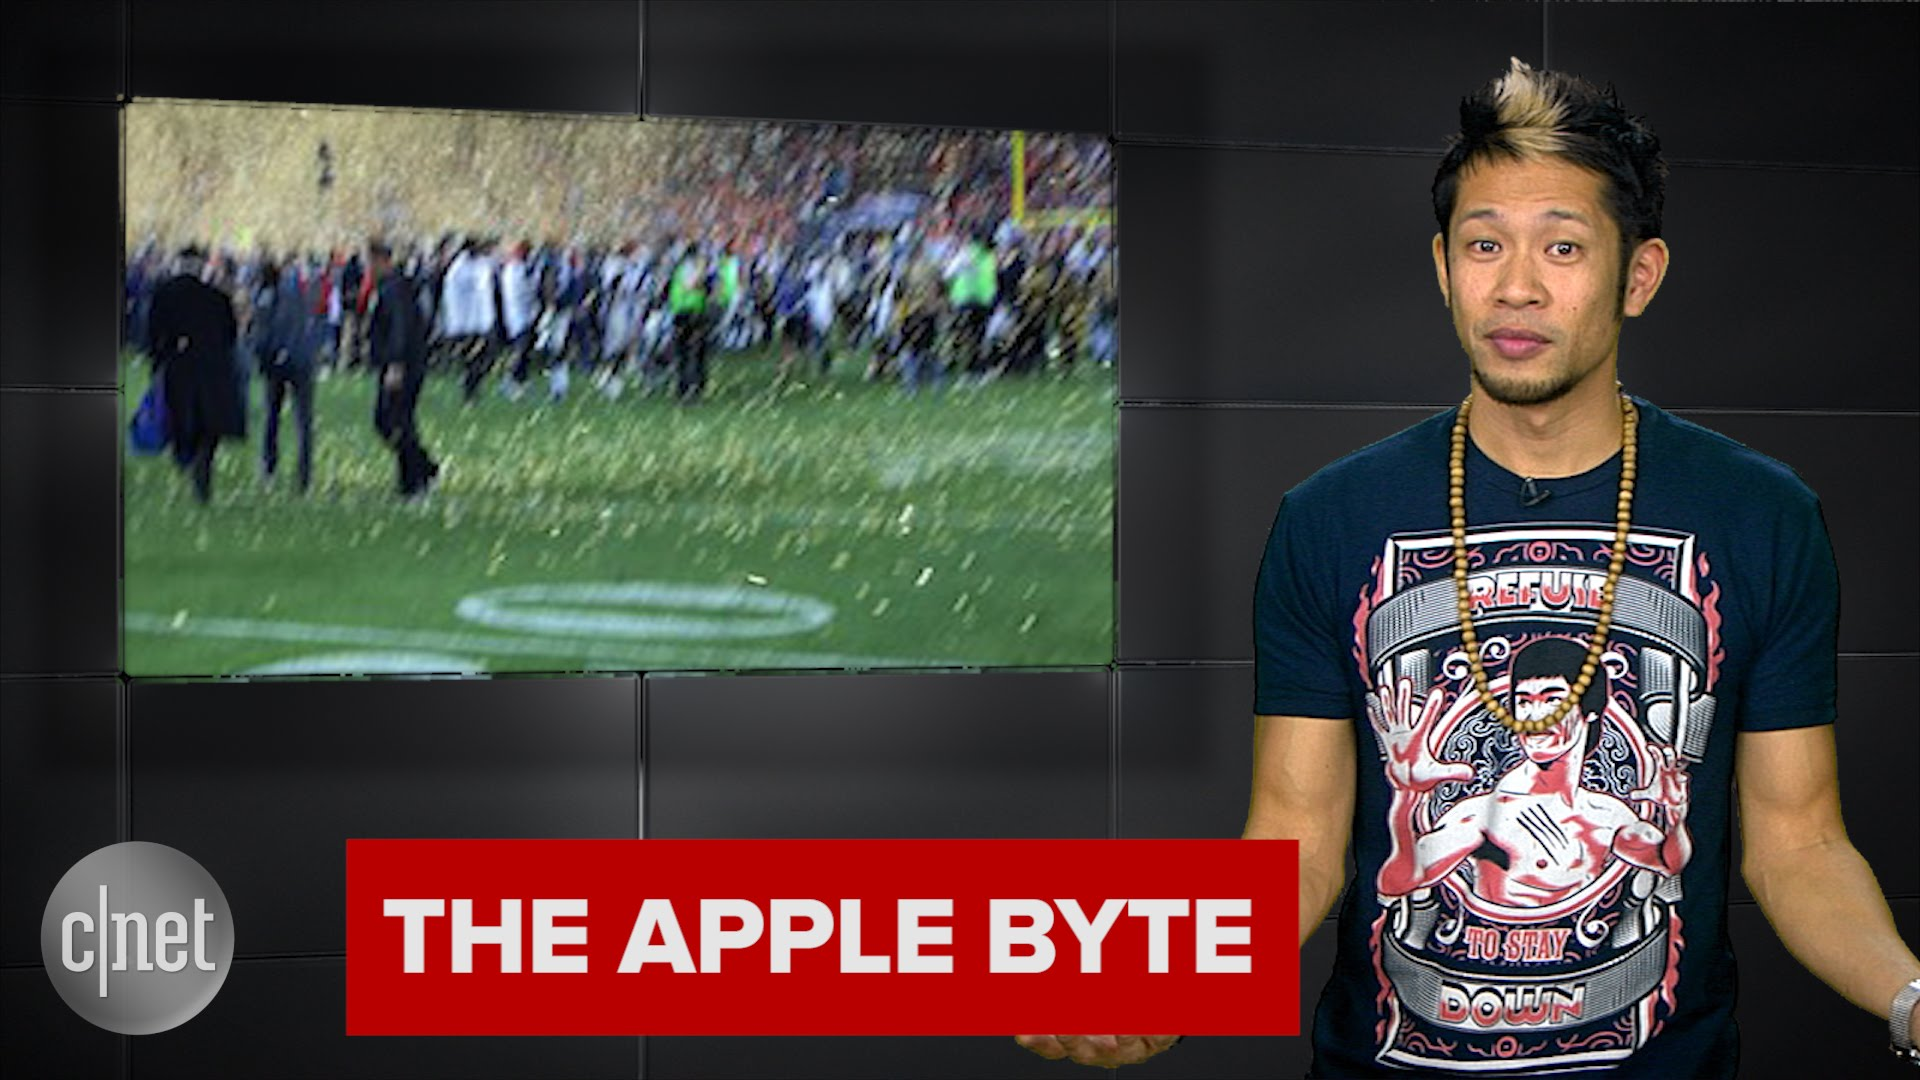 Apple's working on an iPhone even it can't hack (Apple Byte)